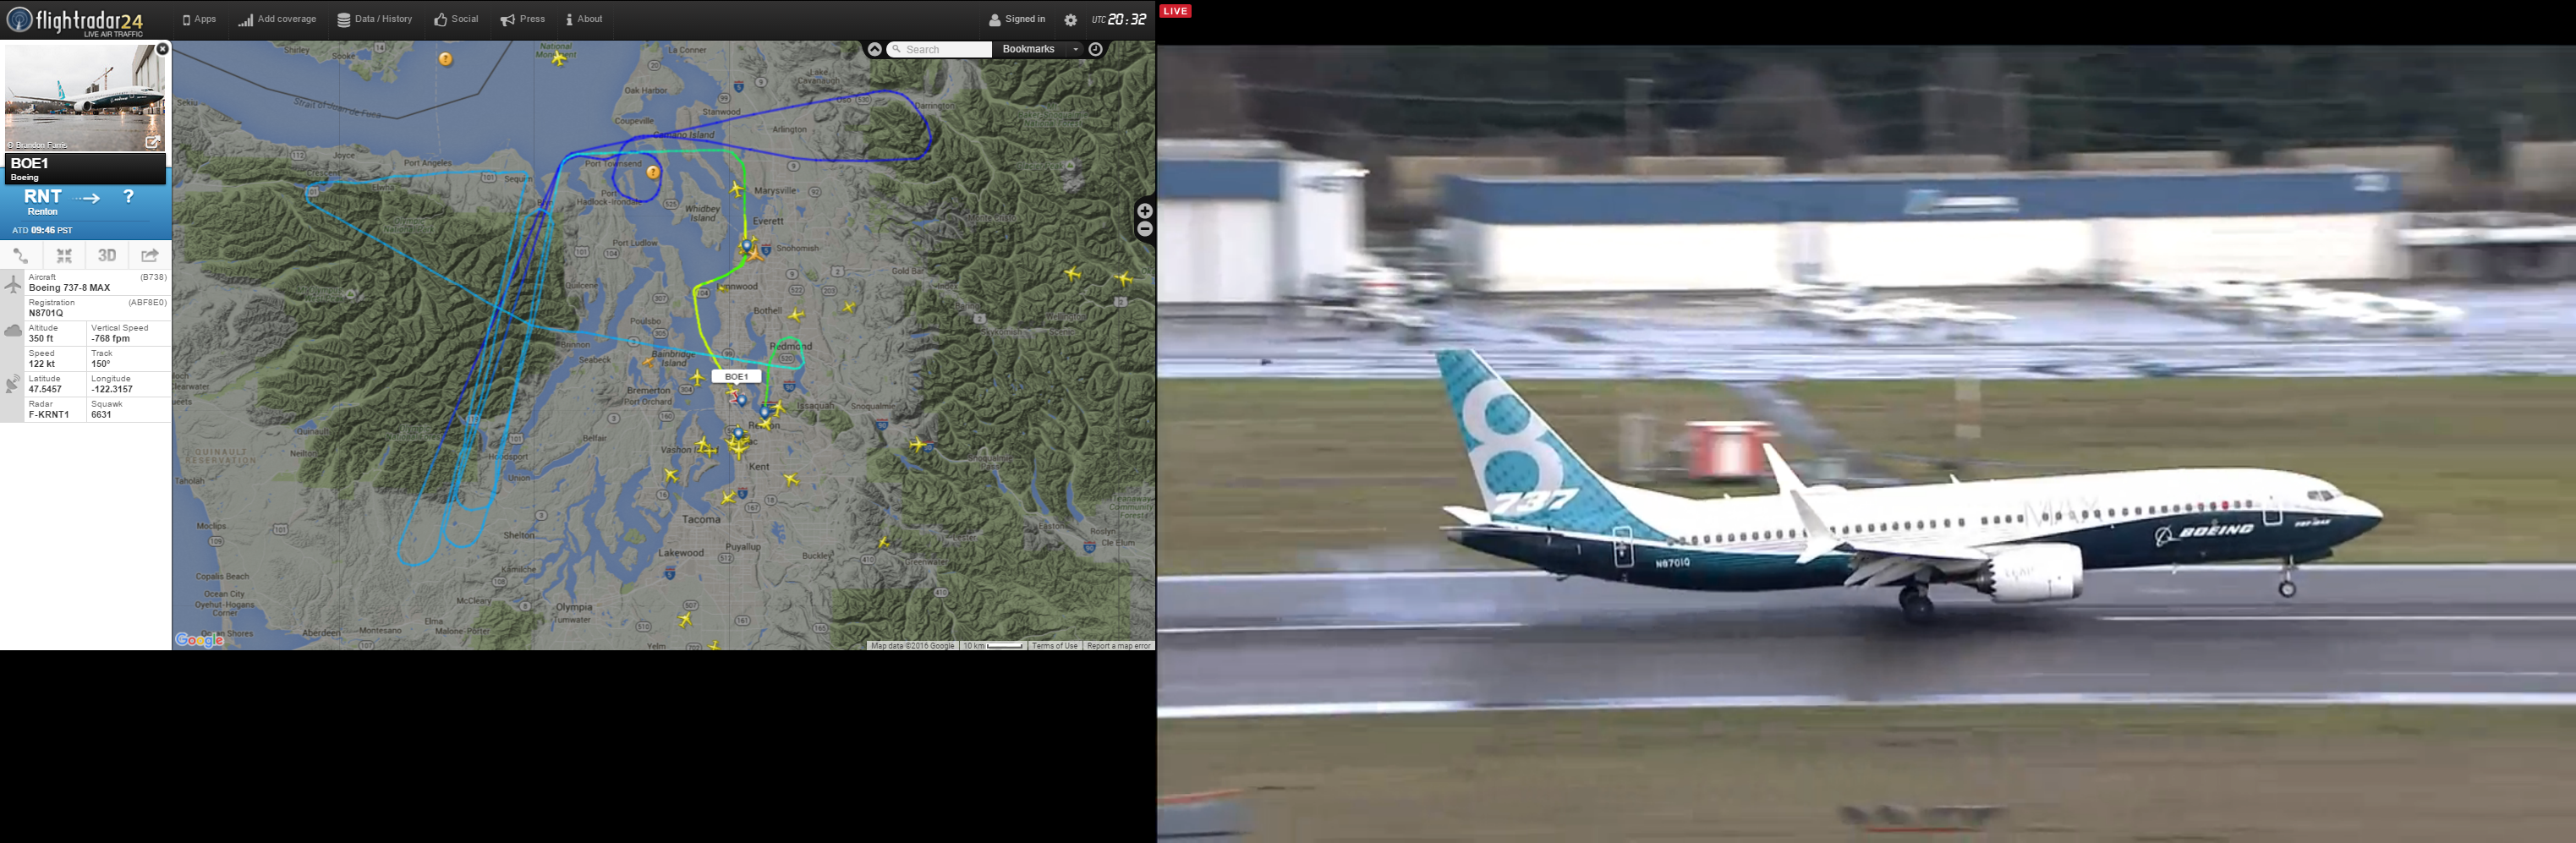 Raspberry Pi Real-Time Flight Tracker Updated